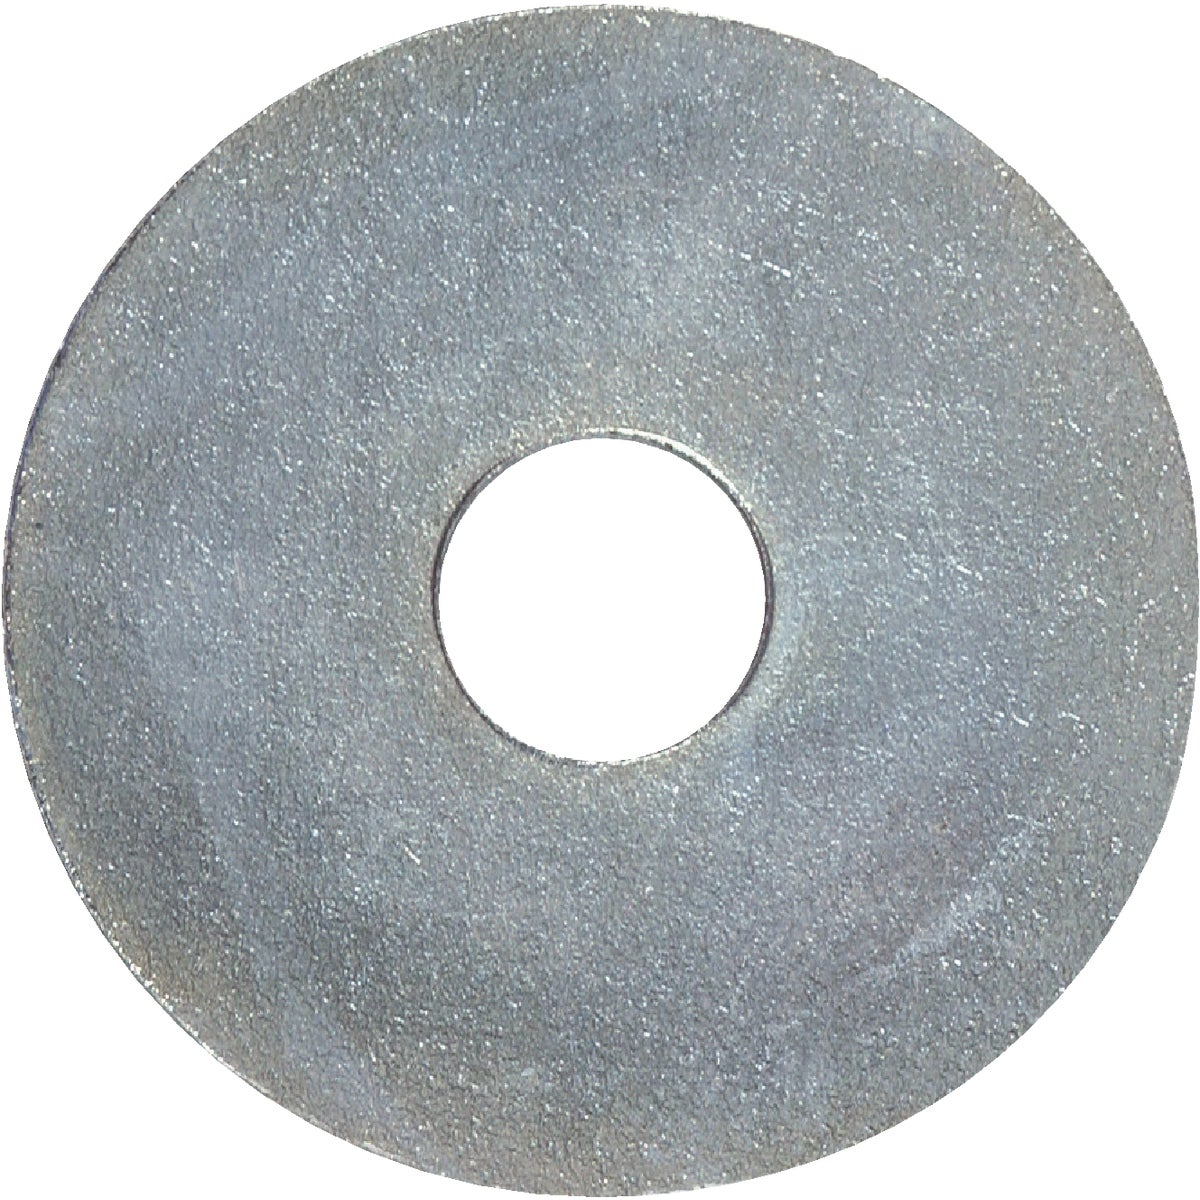 3/8X2 FENDER WASHER